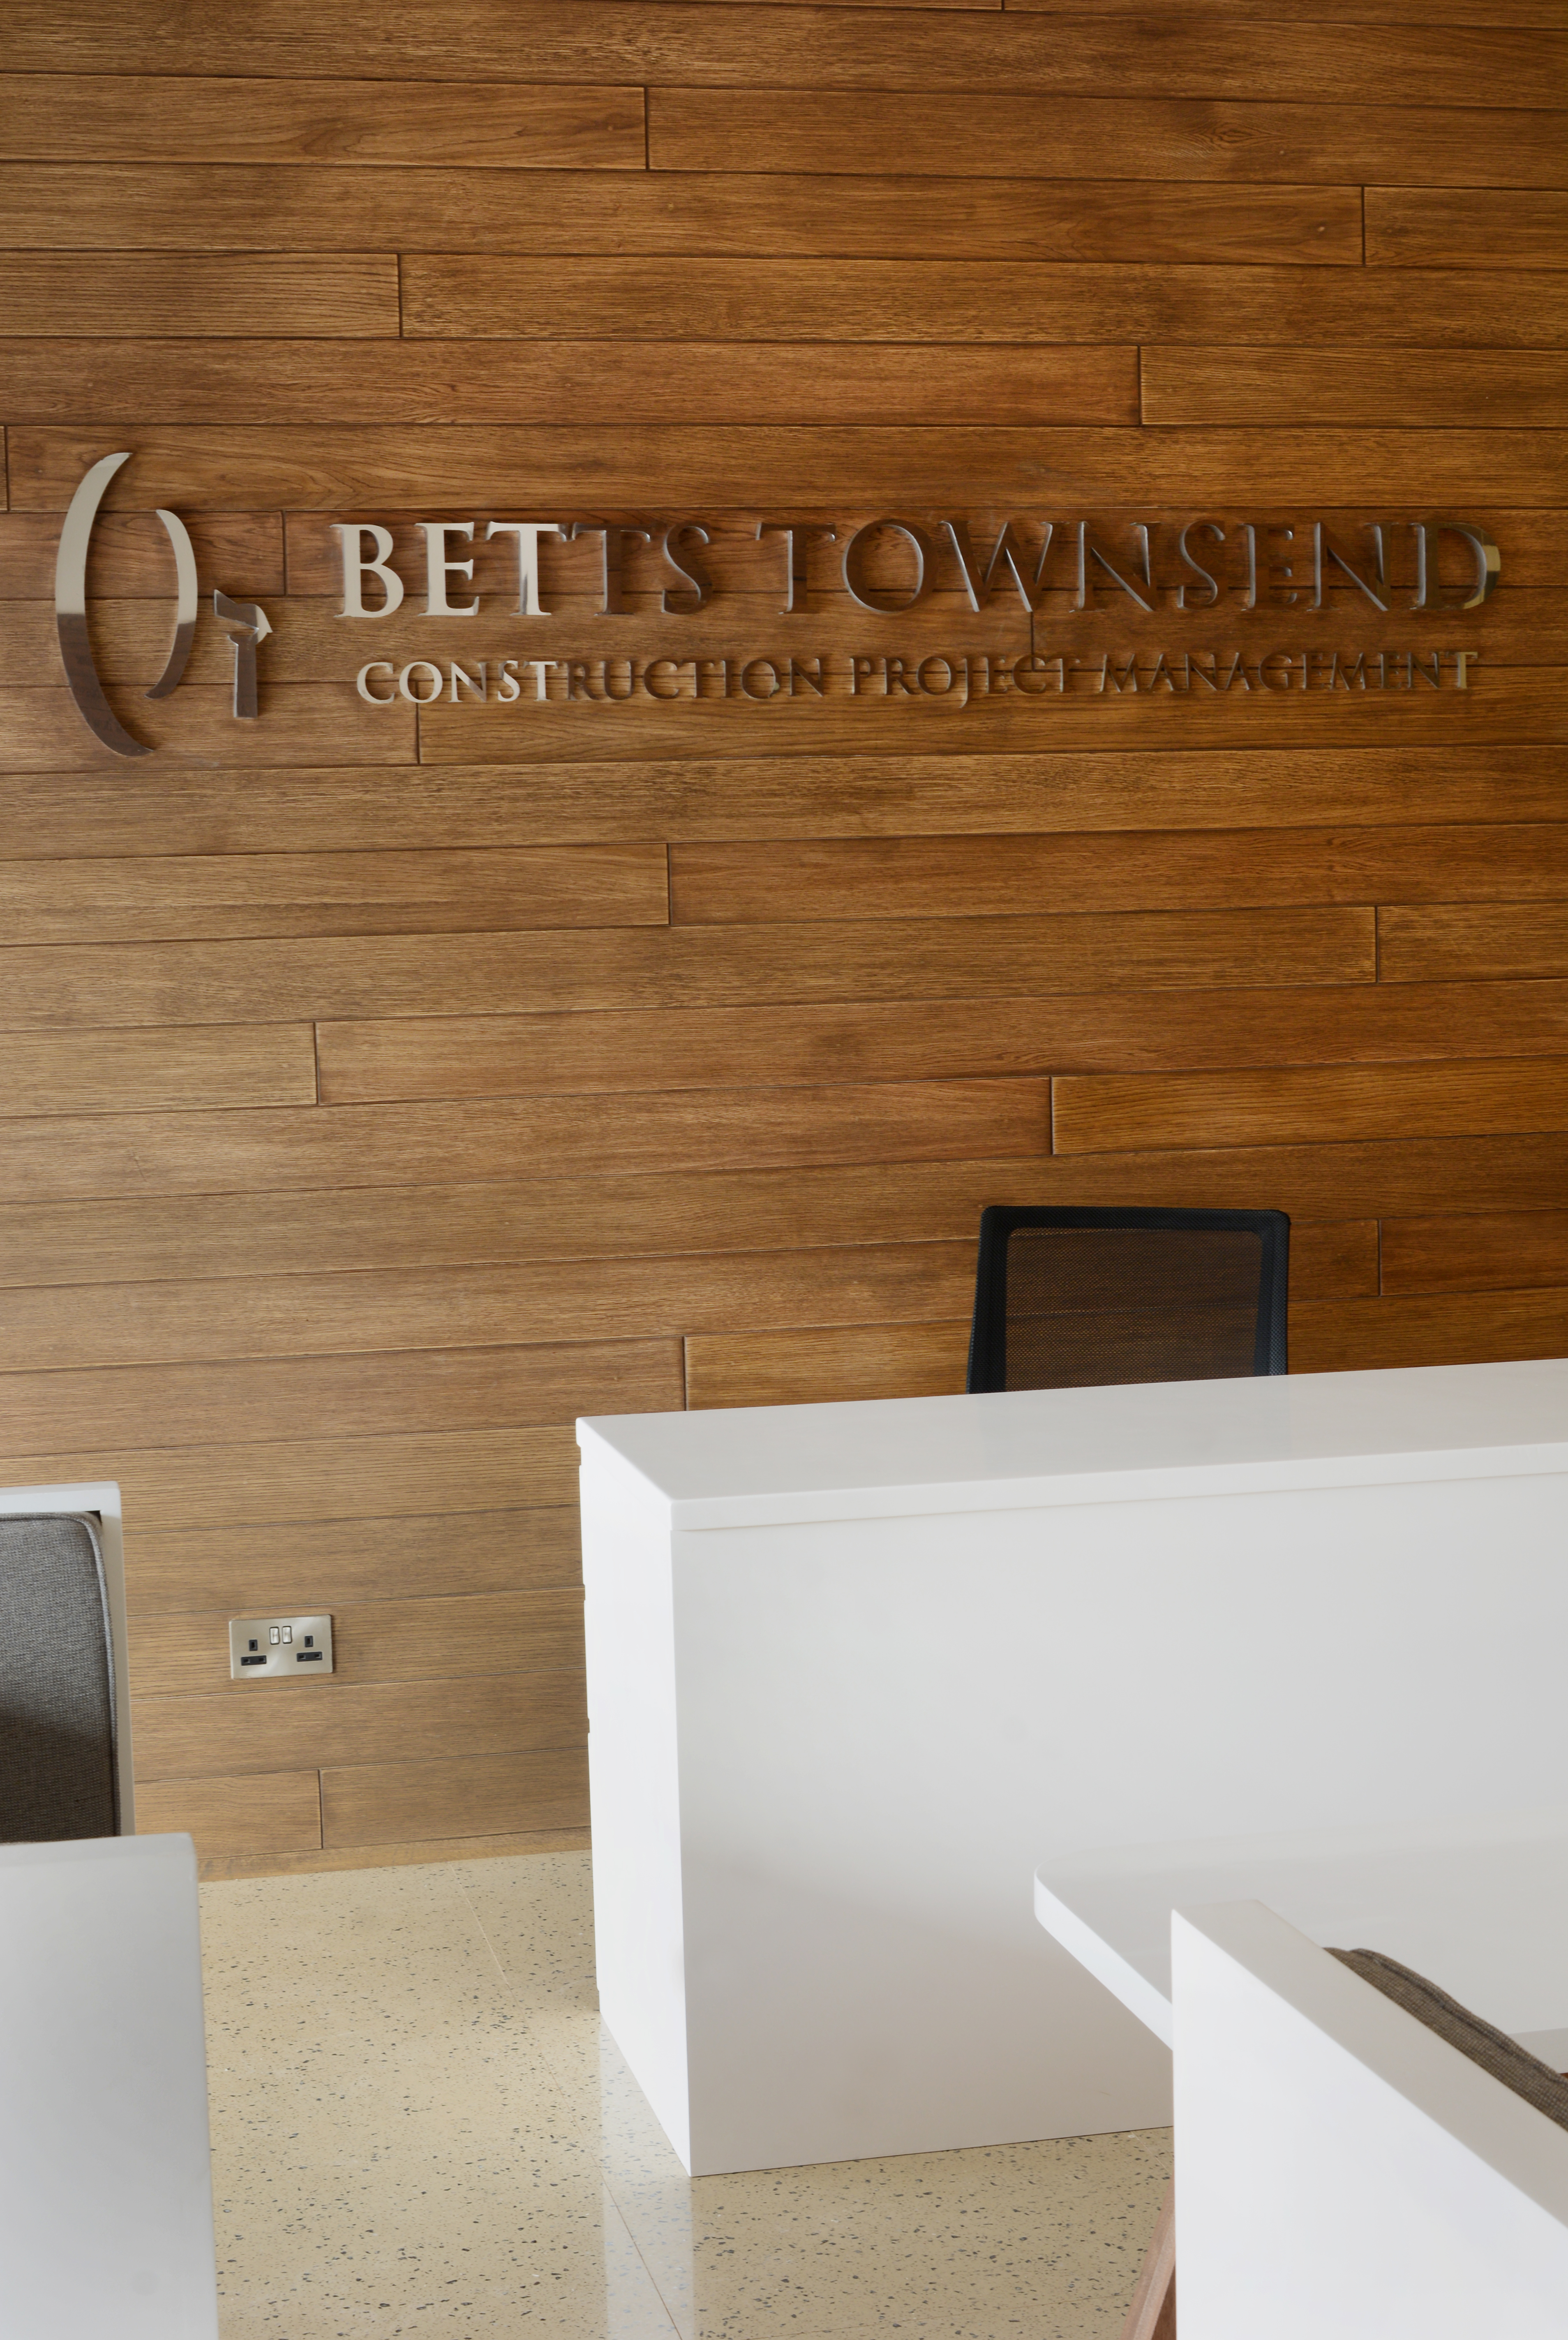 Betts Townsend Reception Area